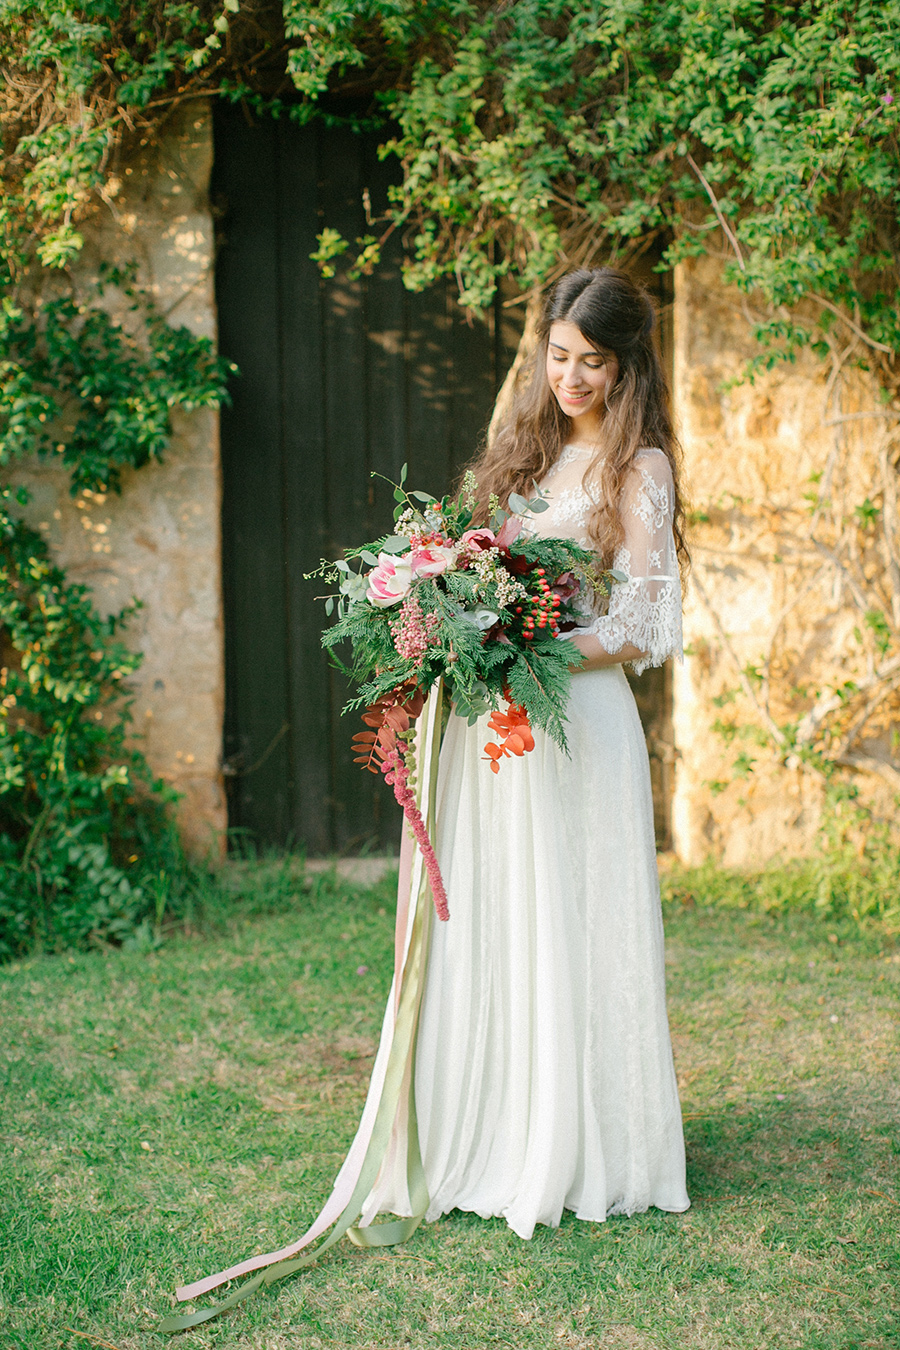 Gorgeous Boho Chic Inspired Wedding Bouquet and Lace Dress - from Greece / coordinated by Love 4 Wed / photo by Anna Roussos Photography